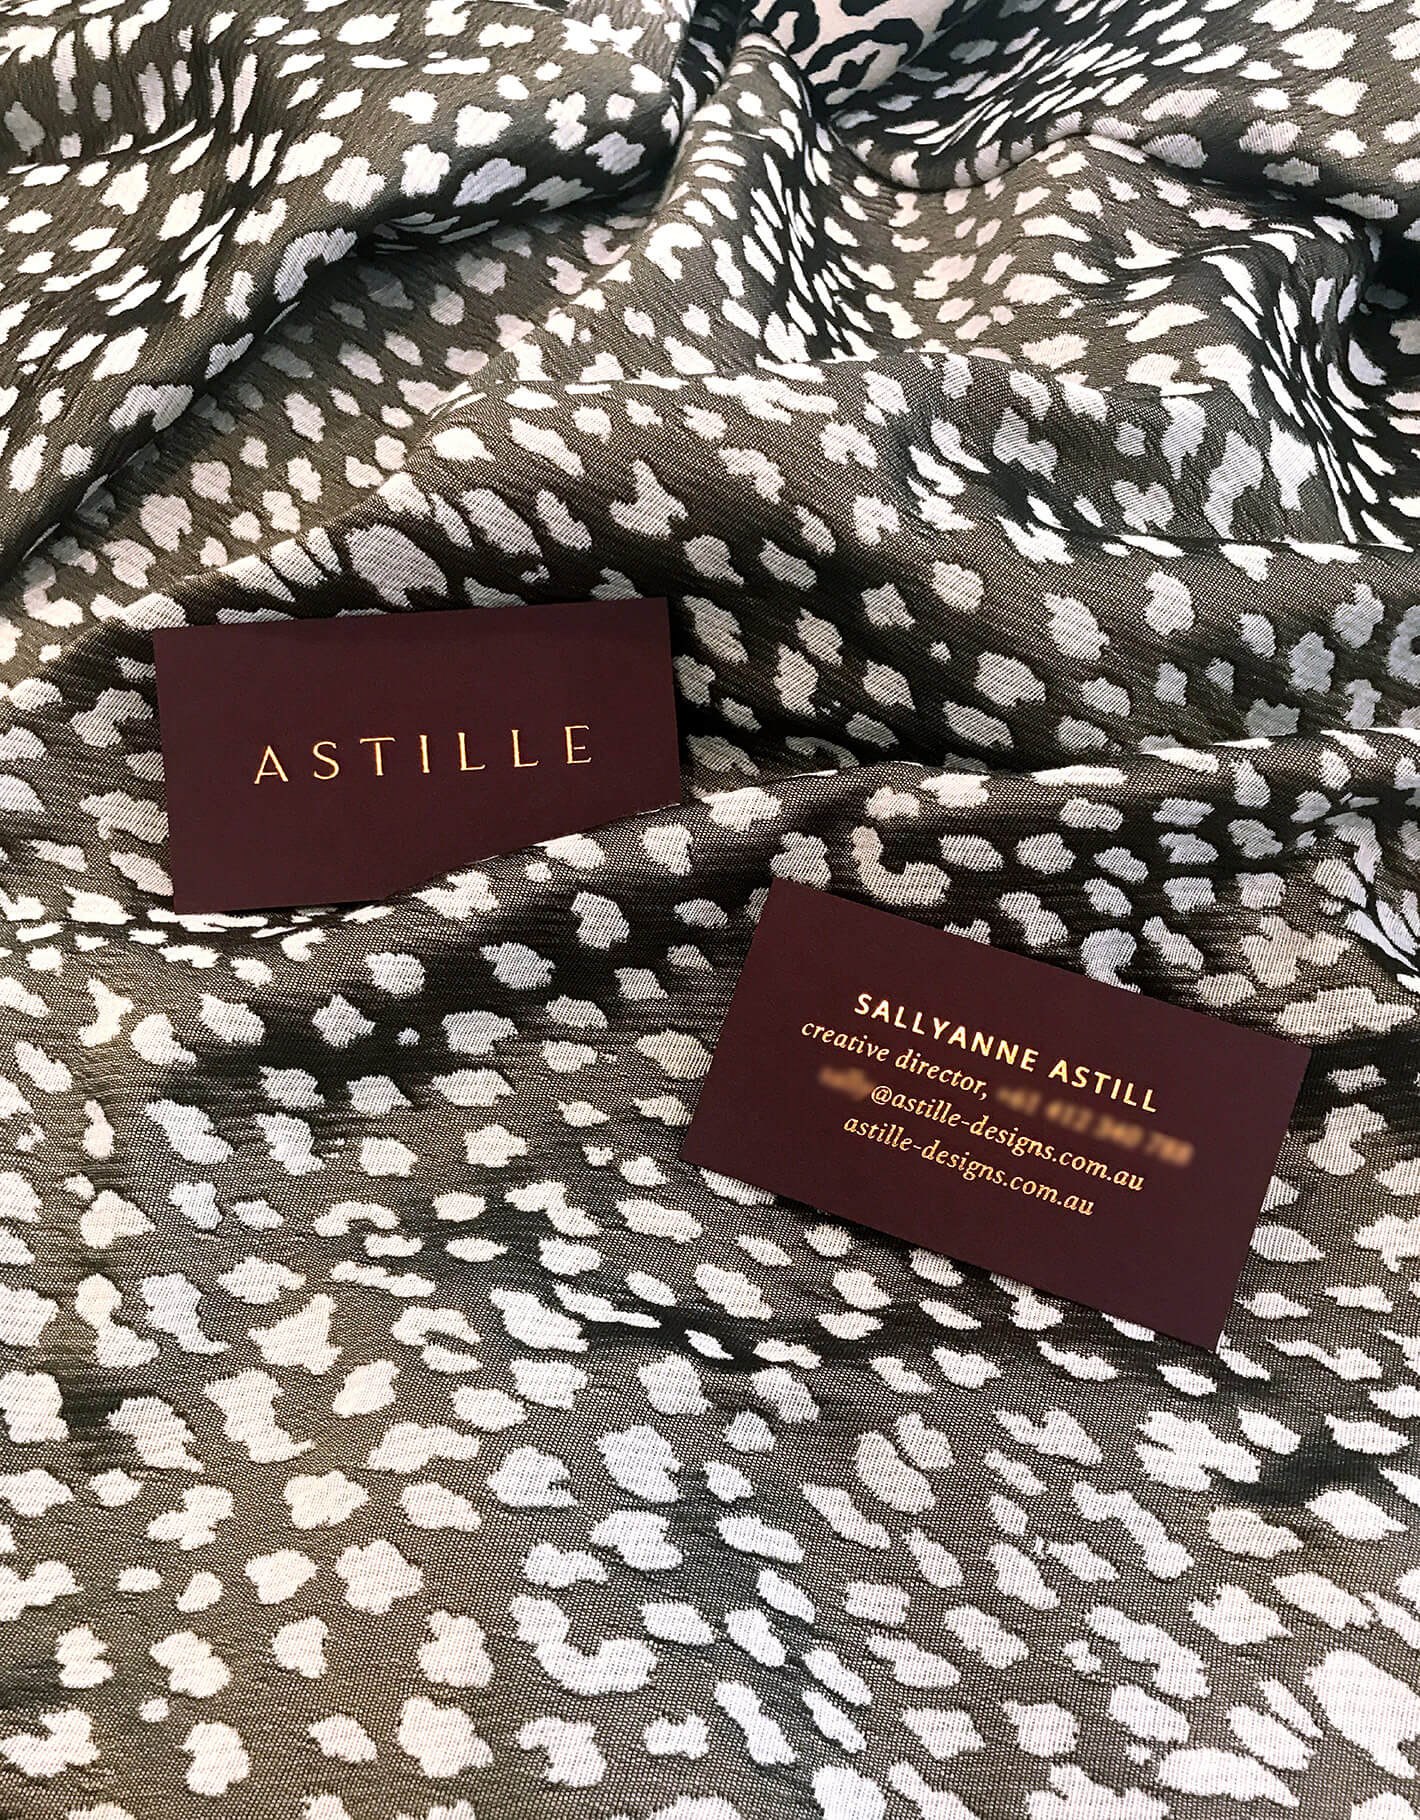 Astille copper foiled business cards on deep brown stock sit on leopard print fabric